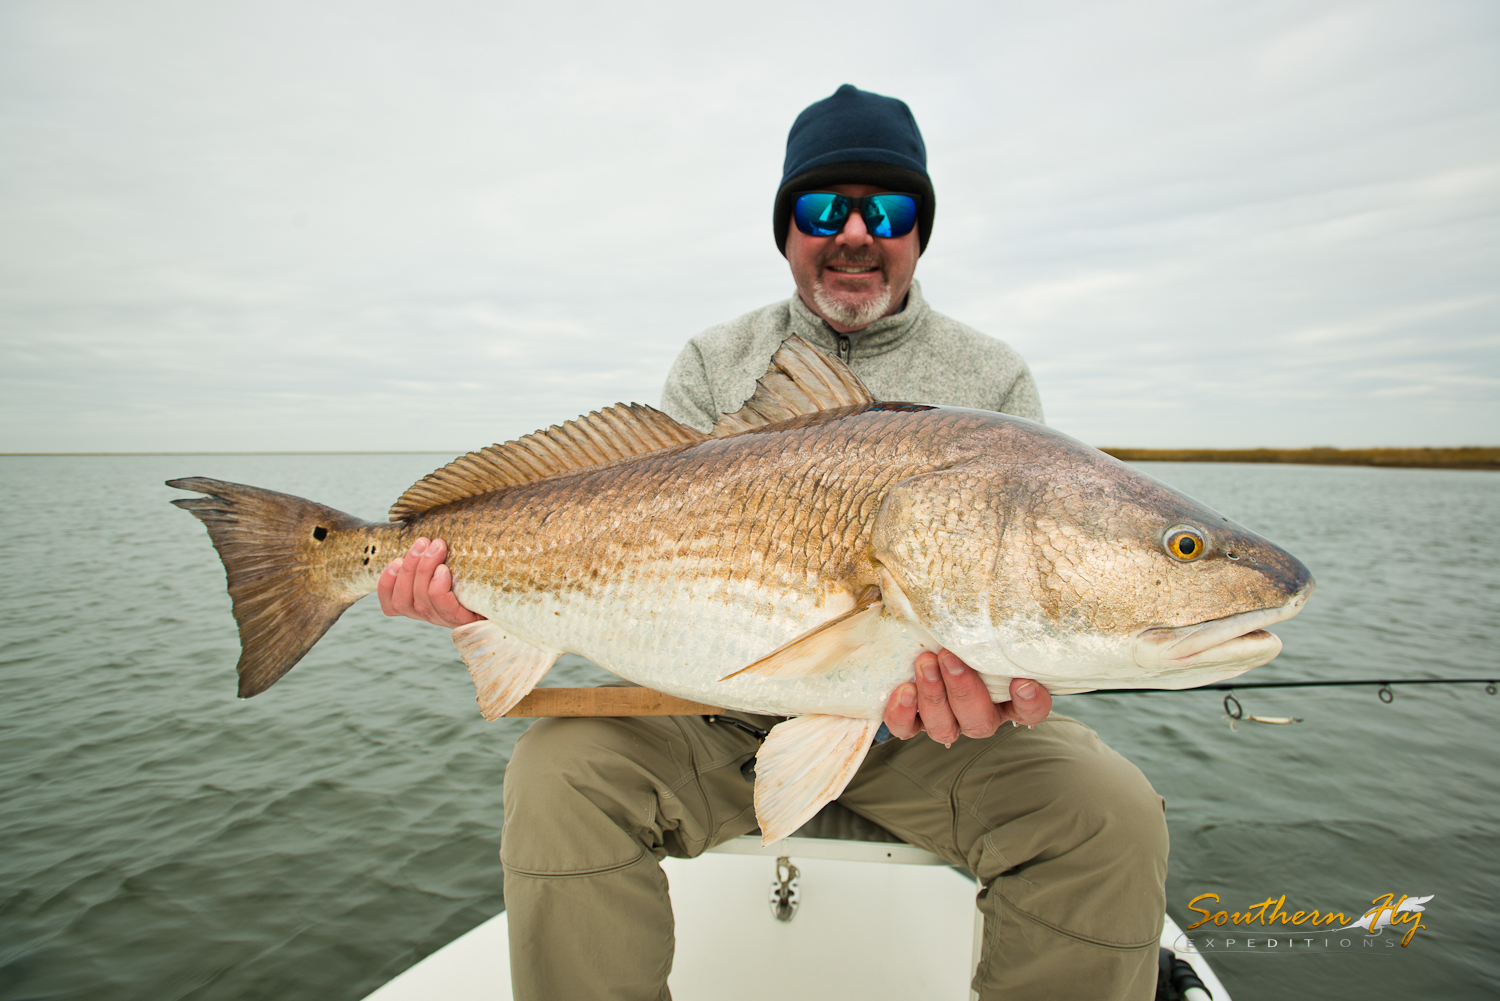 Spin Fishing Marsh Waters near Delacroix La with Southern Fly Expeditions